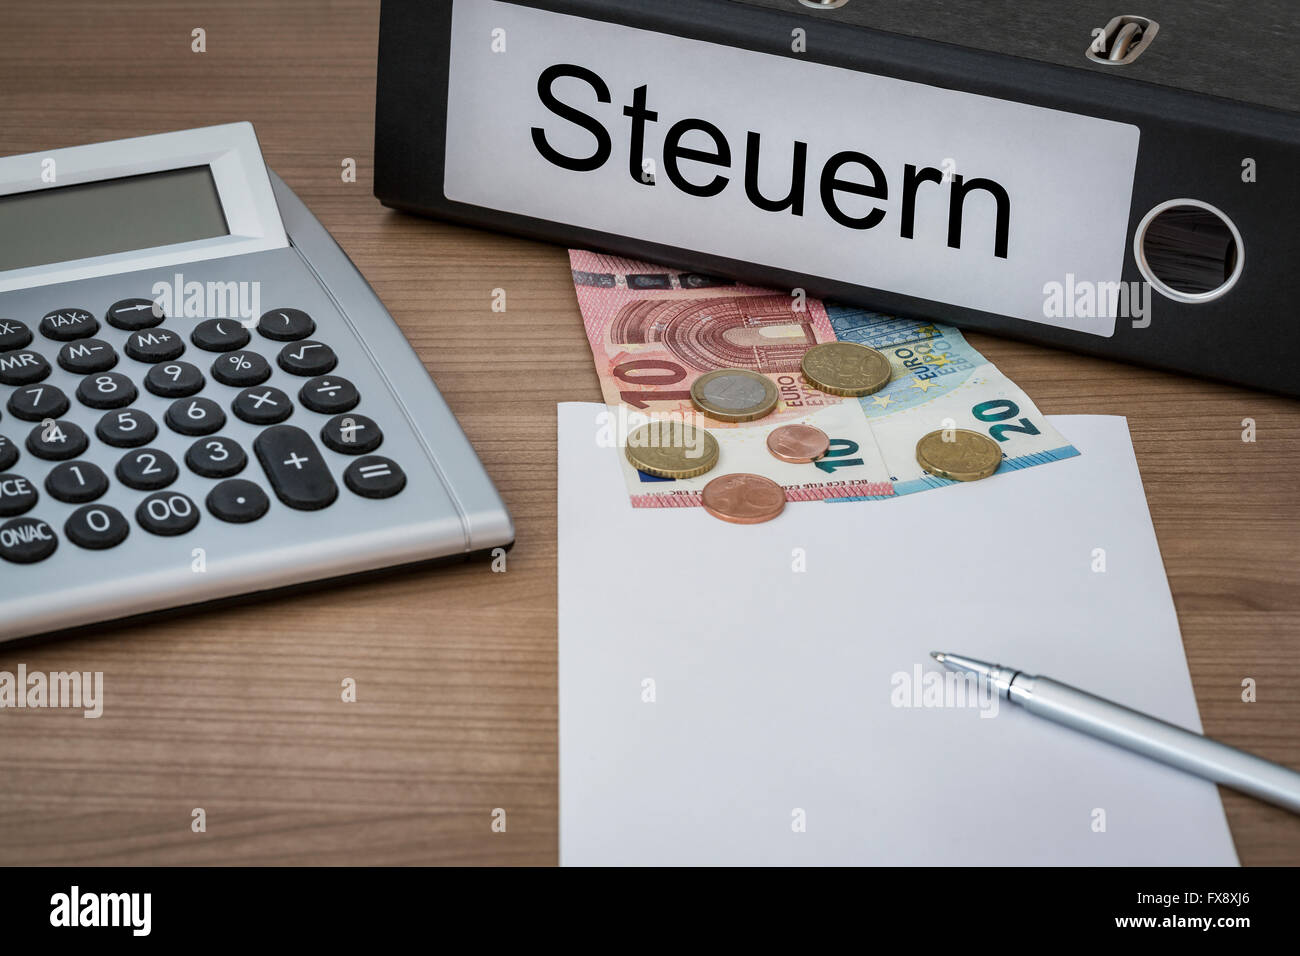 Steuern (German Taxes) written on a binder on a desk with euro money calculator blank sheet and pen Stock Photo